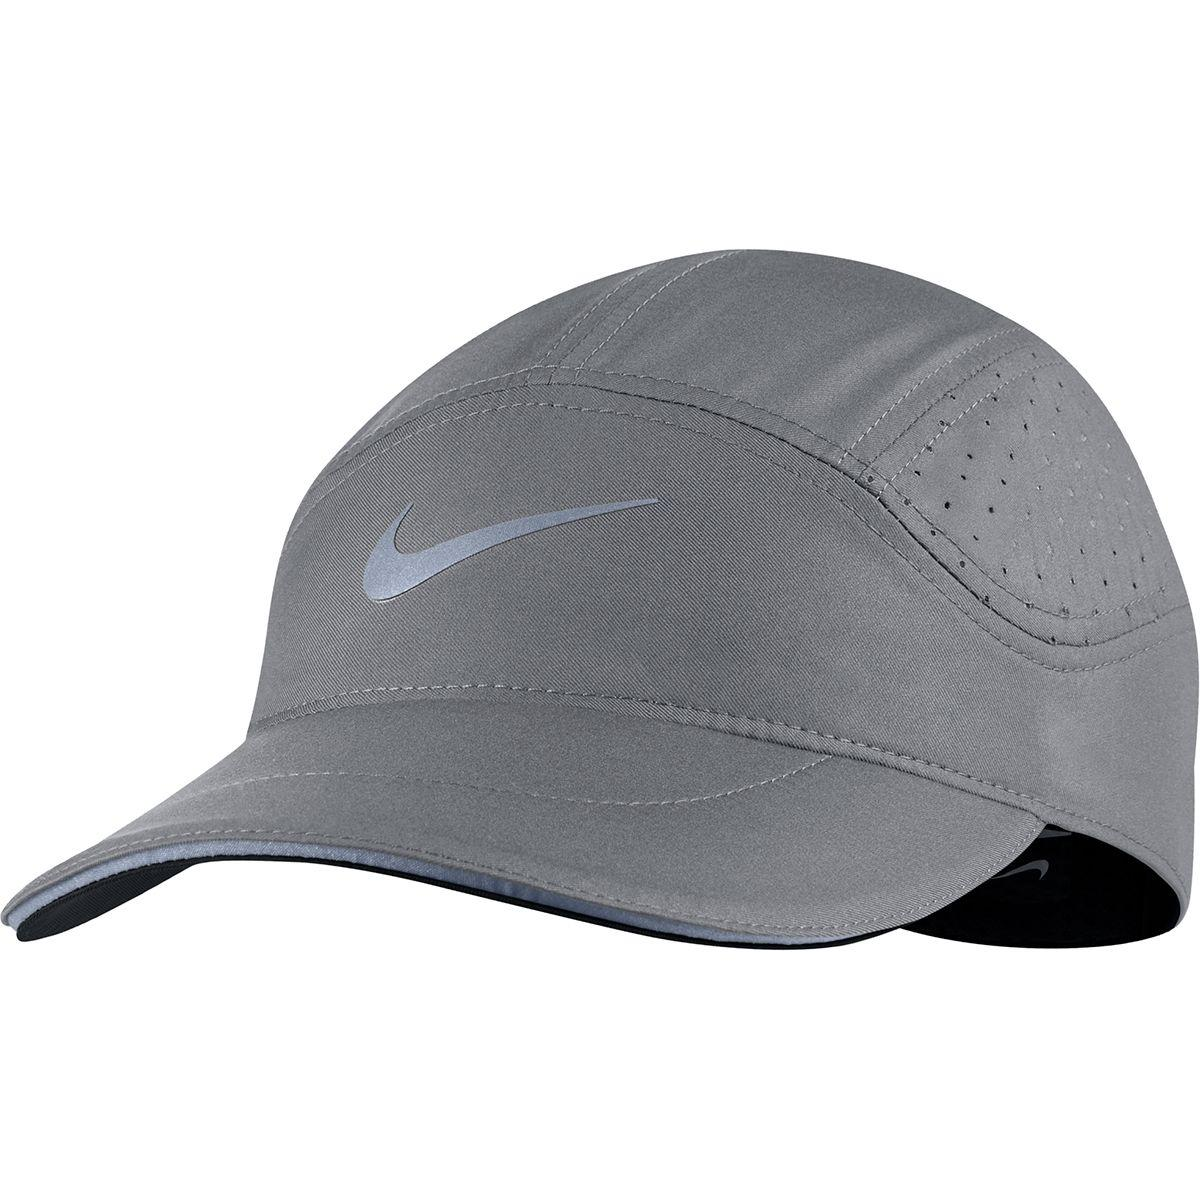 Lyst - Nike Aerobill Elite Running Hat in Gray for Men 0e9db1fcb0a